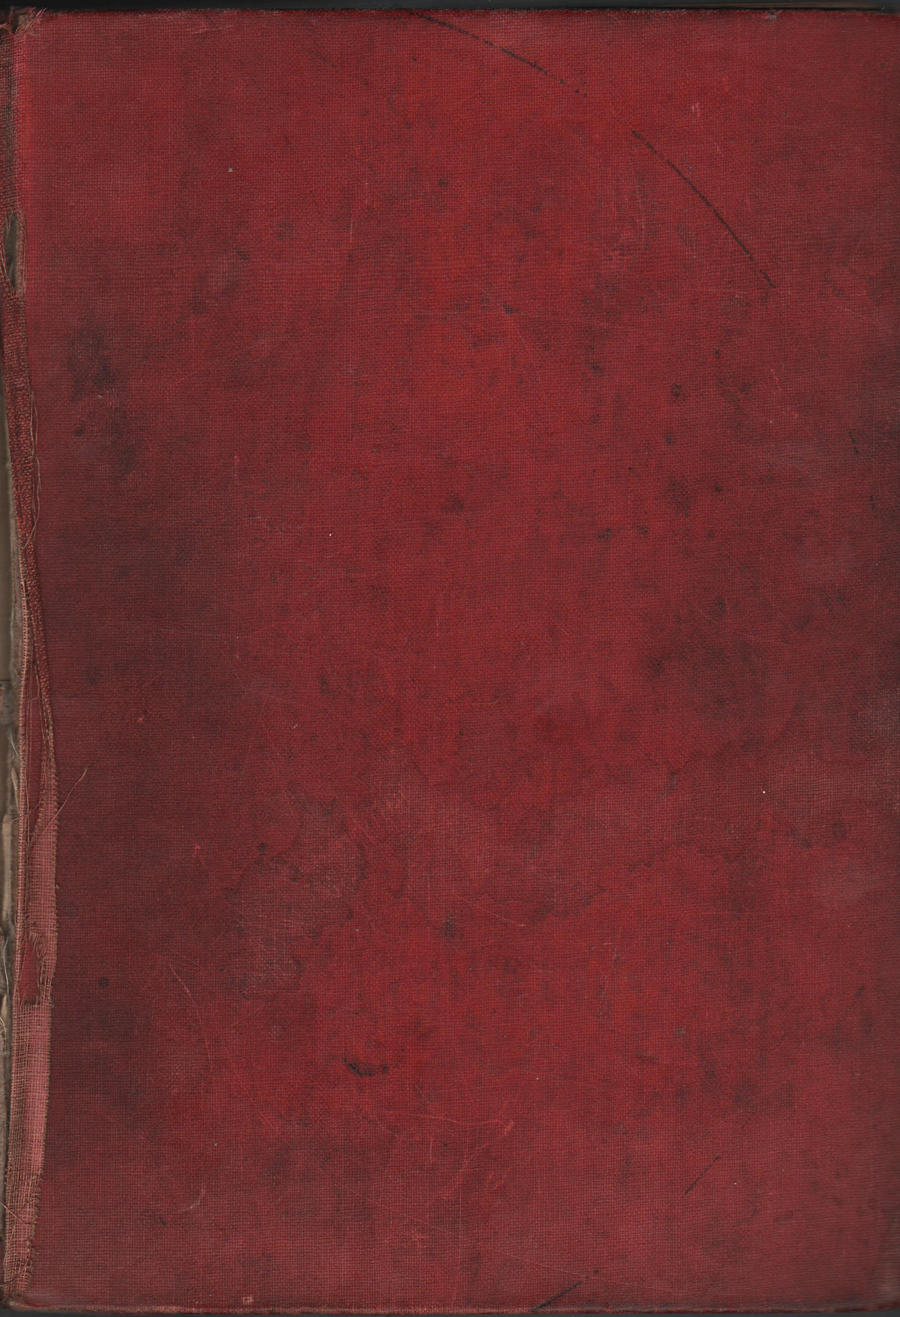 Red Book Cover Texture ~ Old book cover b by generalvyse on deviantart